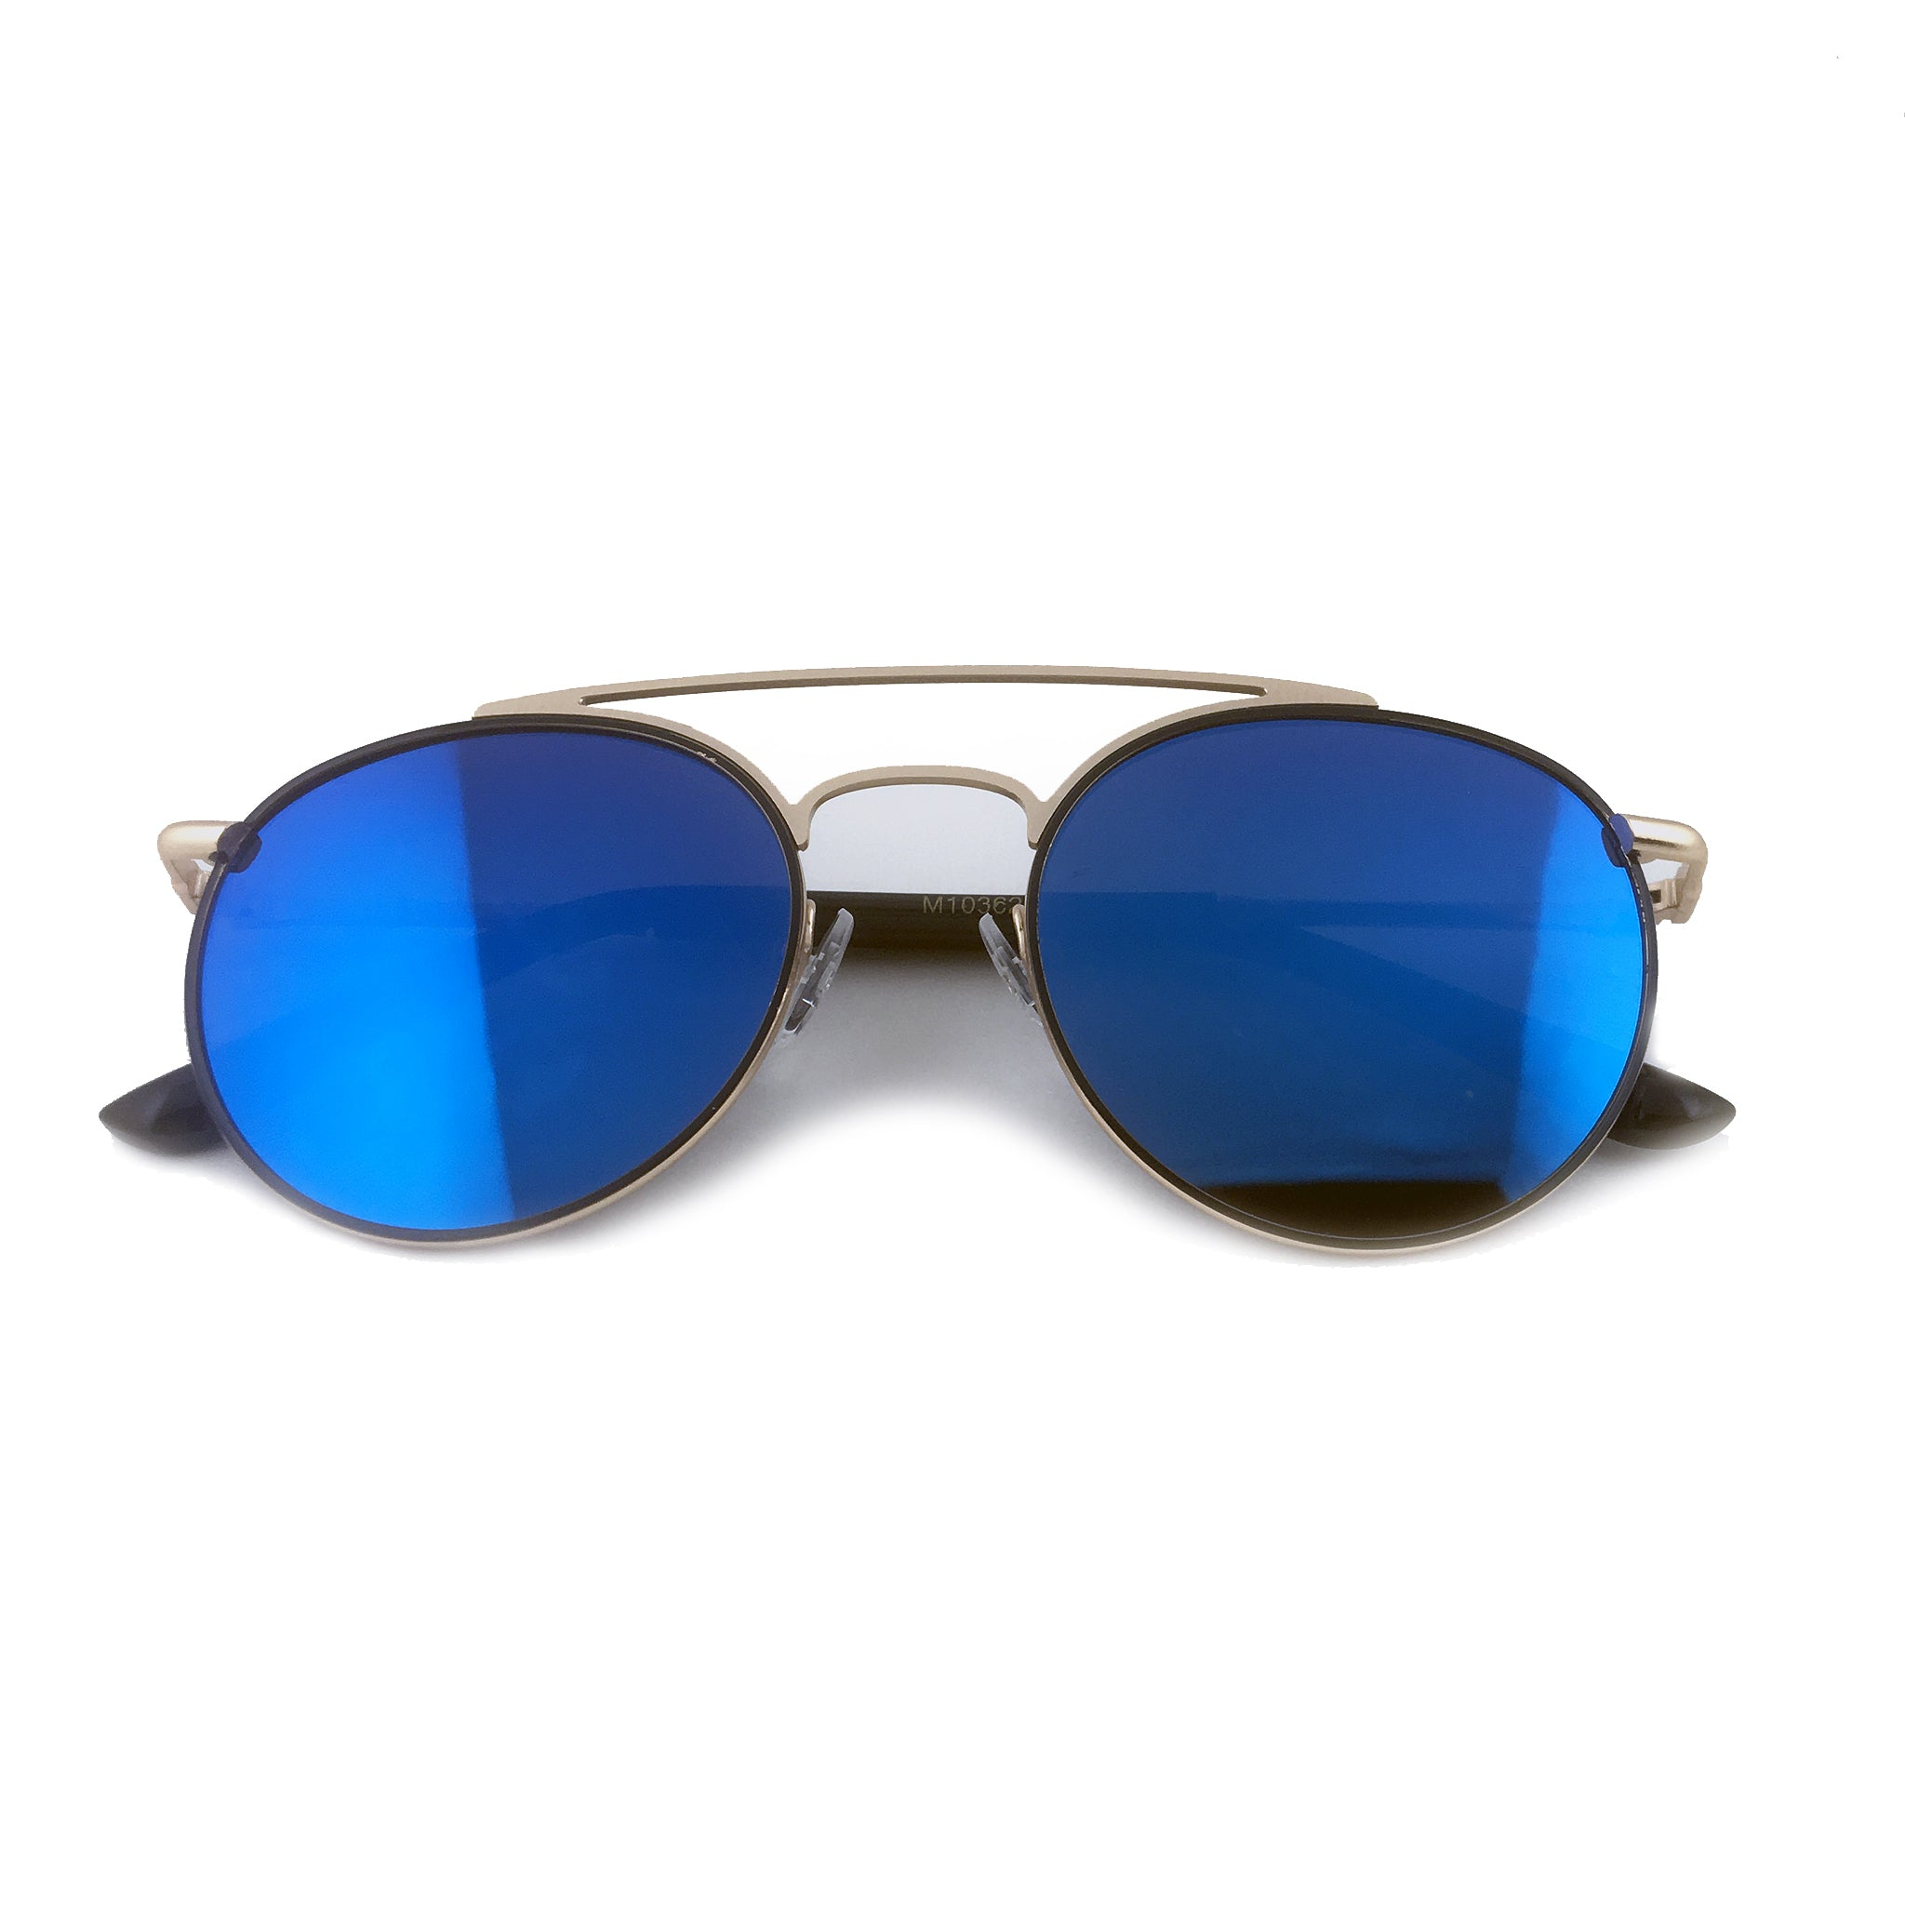 Blue tinted round aviators with gold metal frame. | The Perfect Gentleman